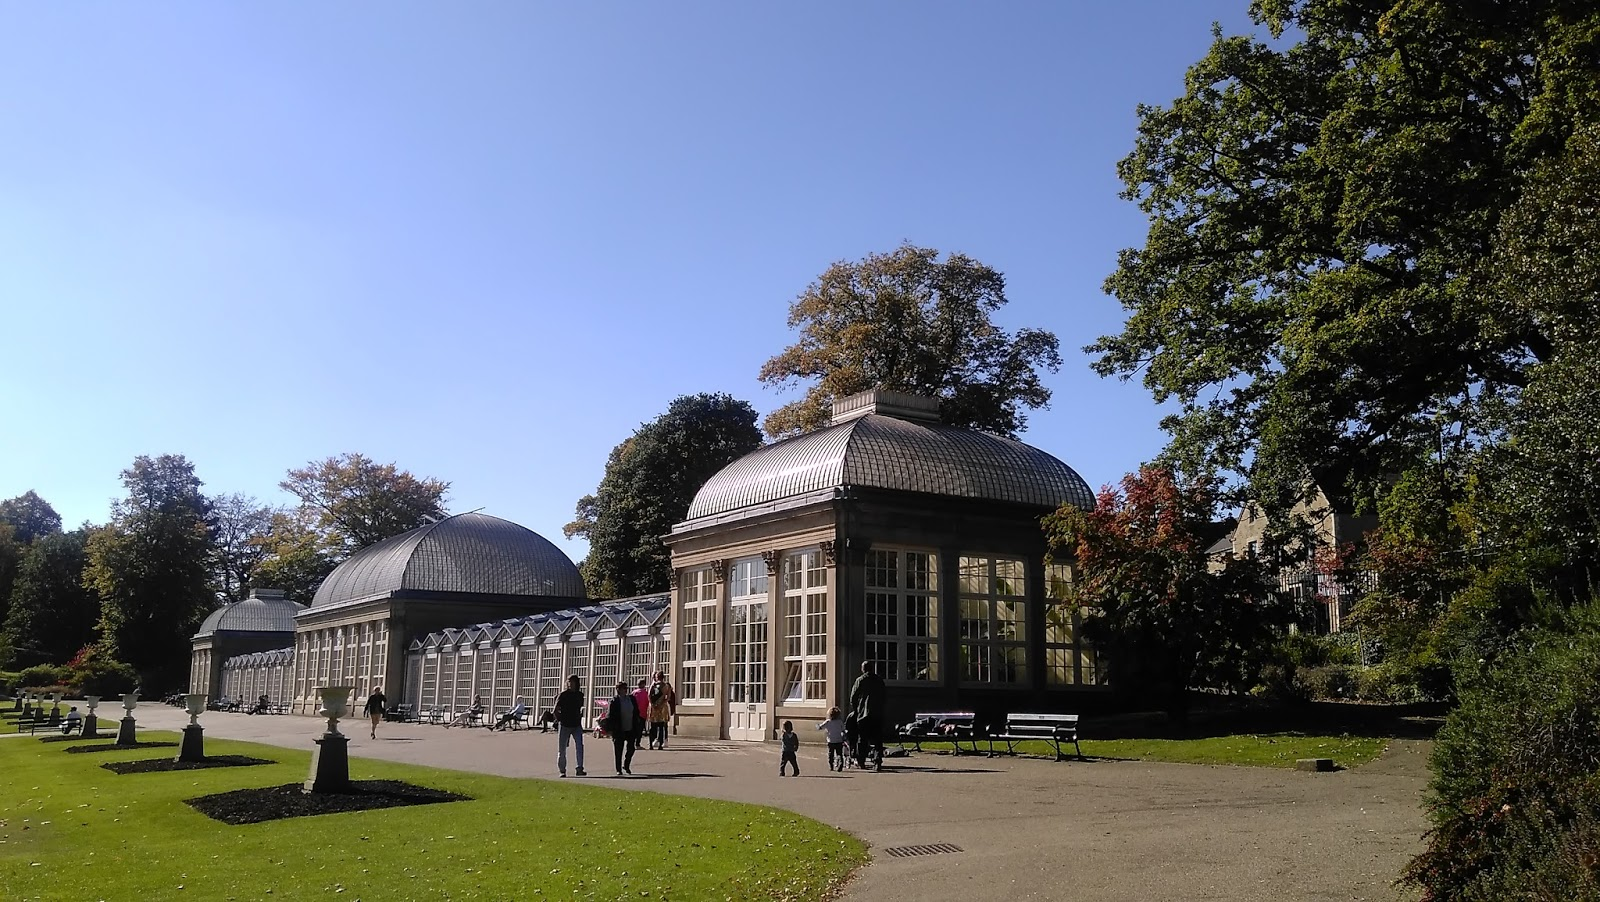 gwenfar s garden and other musings photo essay sheffield the clear blue skies and warm autumn sun called to us and it said the sheffield botanical gardens have lunch and walk around and enjoy the sun and